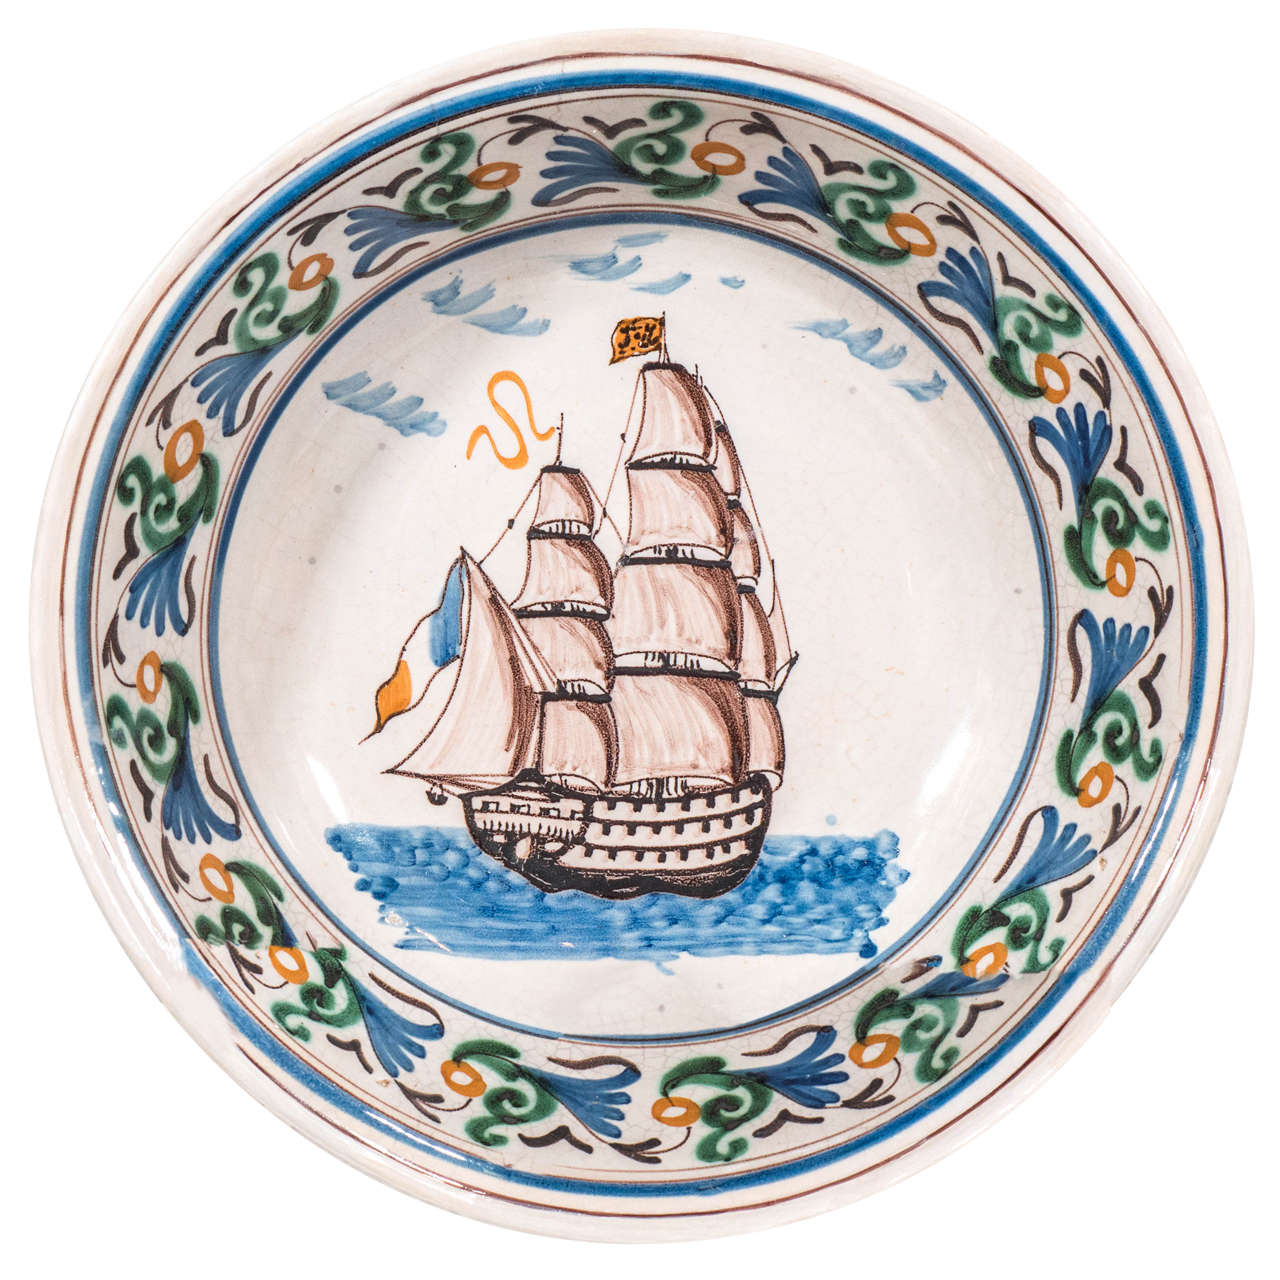 French Faience Bowl with a Sailing Ship